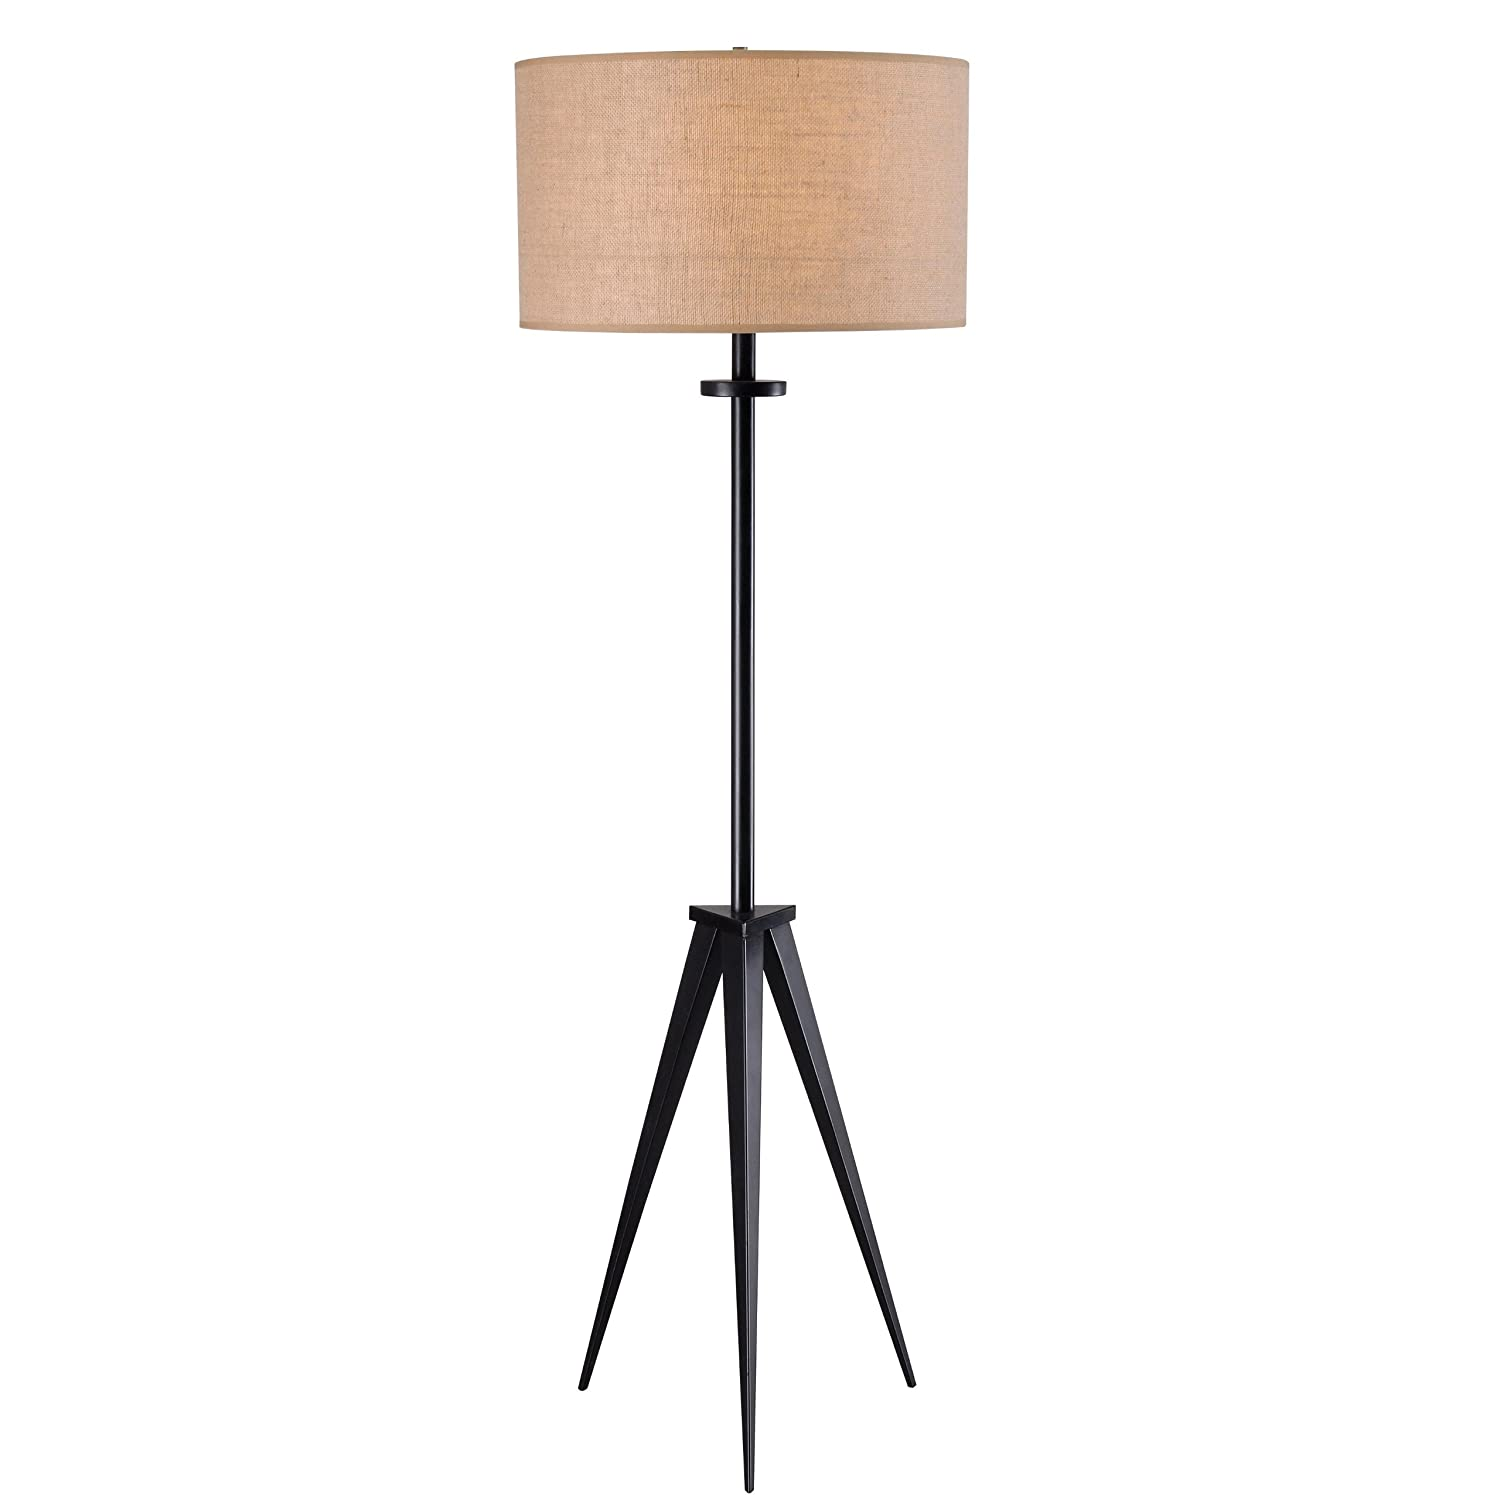 Kenroy Home ORB Foster Floor Lamp Oil Rubbed Bronze Finish